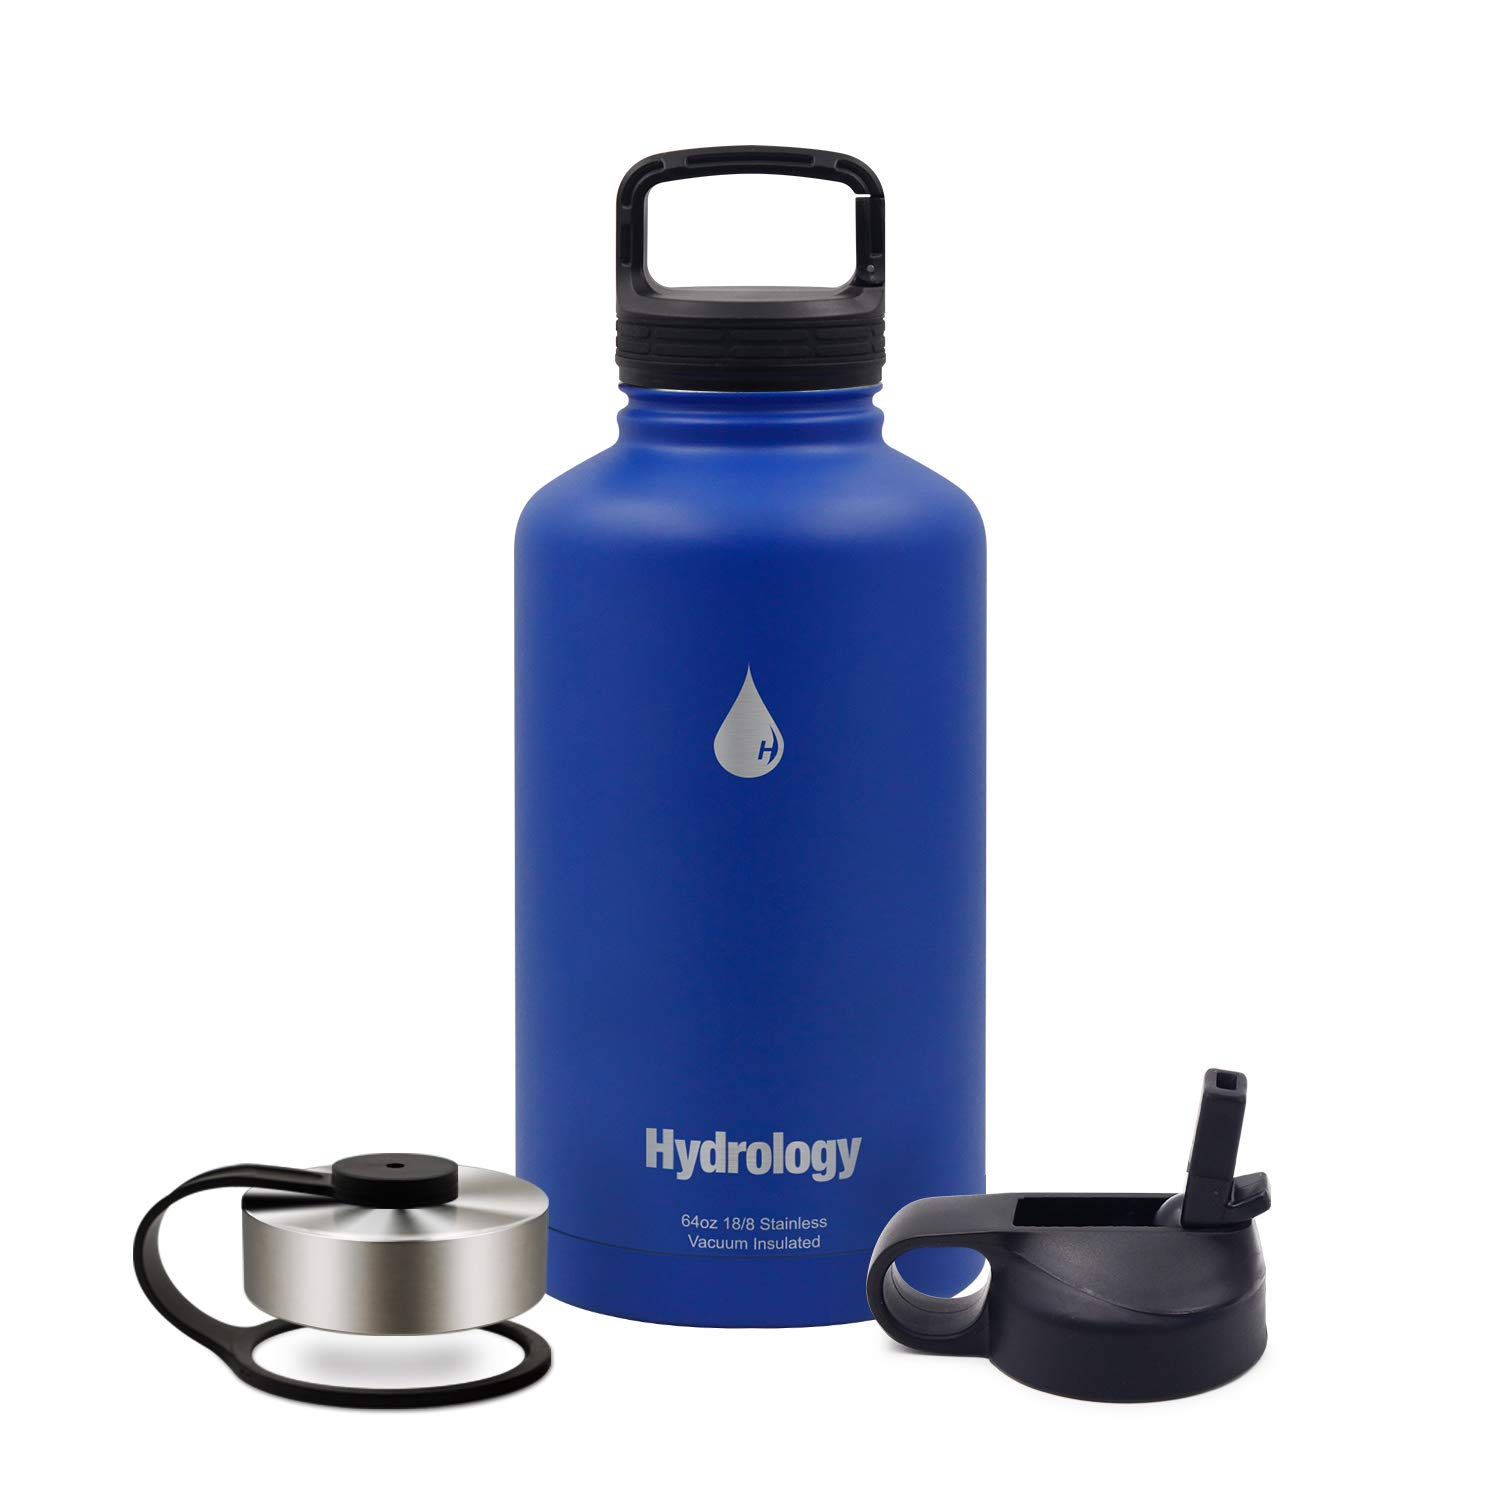 Hydrology with 3 LIDS Double Wall Vacuum Insulated Stainless Steel Water Bottle Flask Growler - Keeps Cold and HOT (Cool Blue, 64 oz)